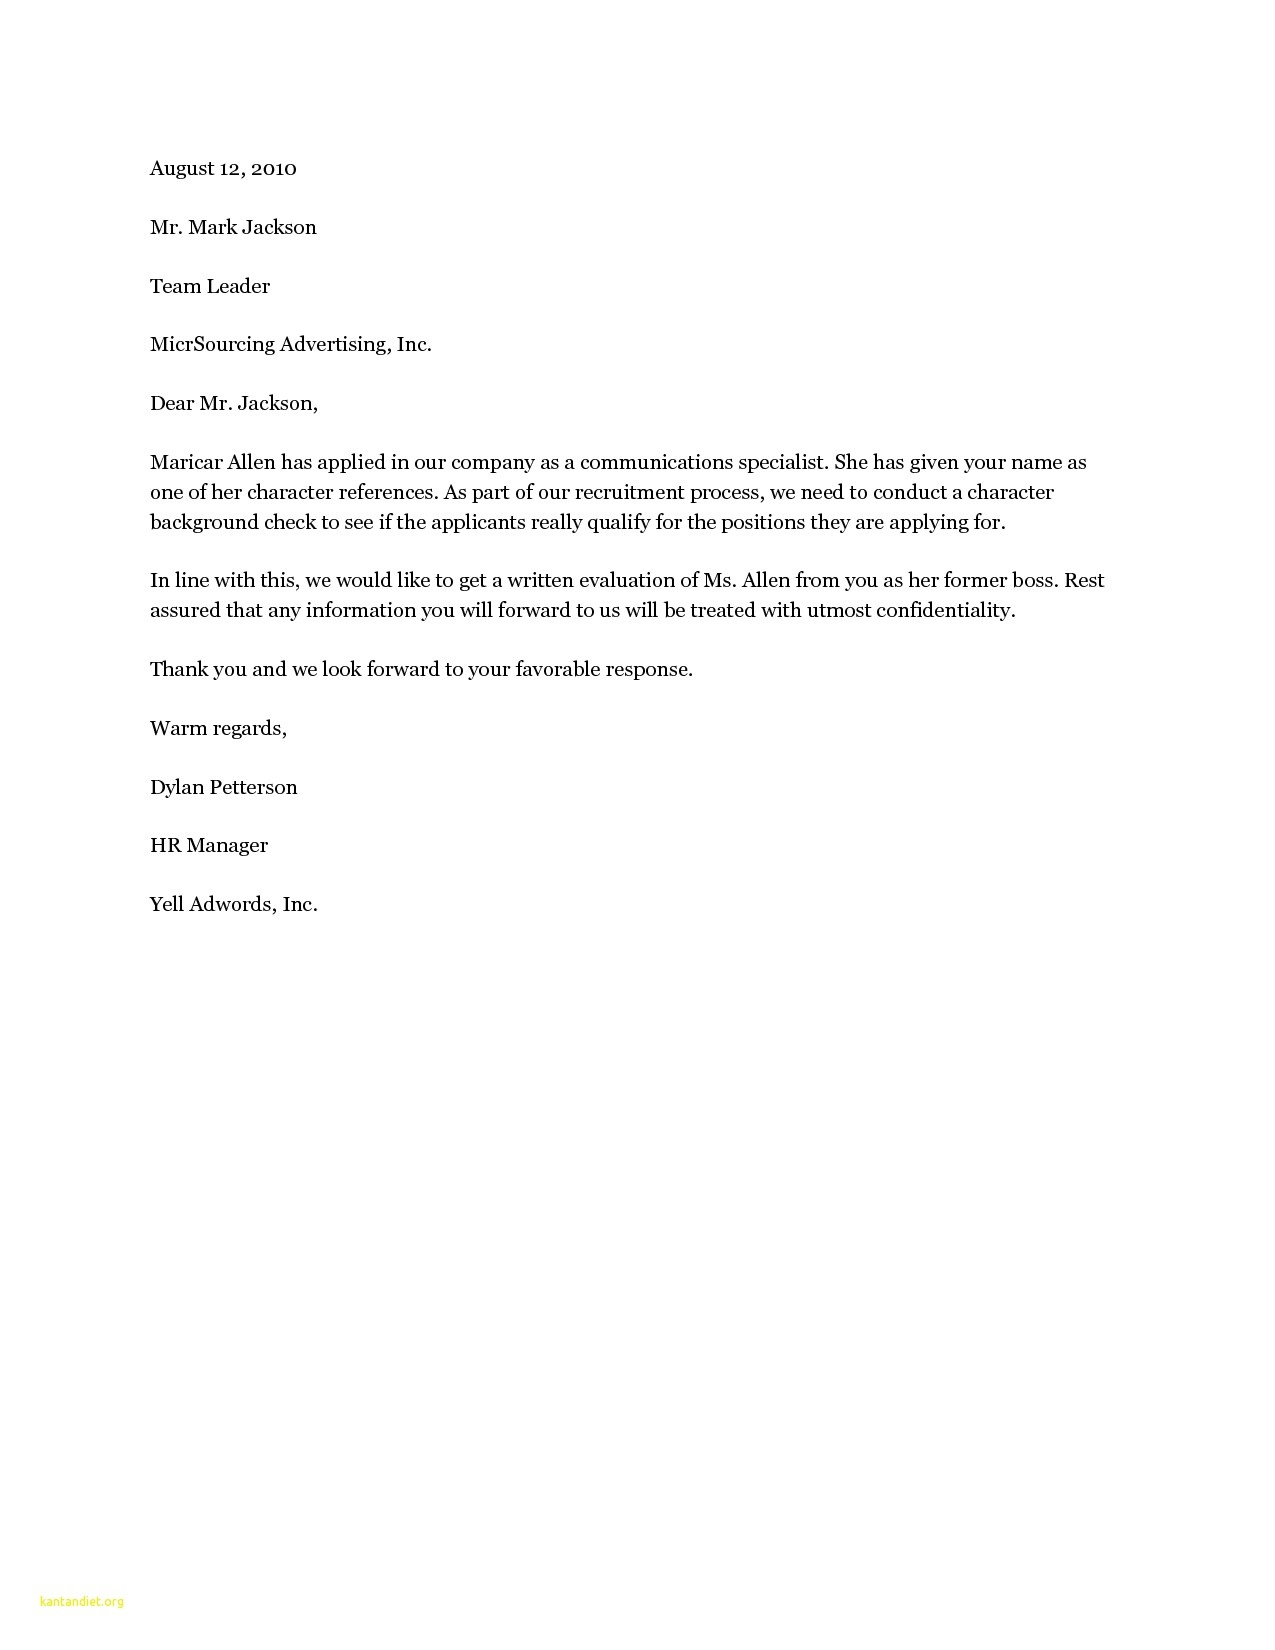 Advertising Agency Of Record Letter Template - Recordplayerorchestra Free Resume Template